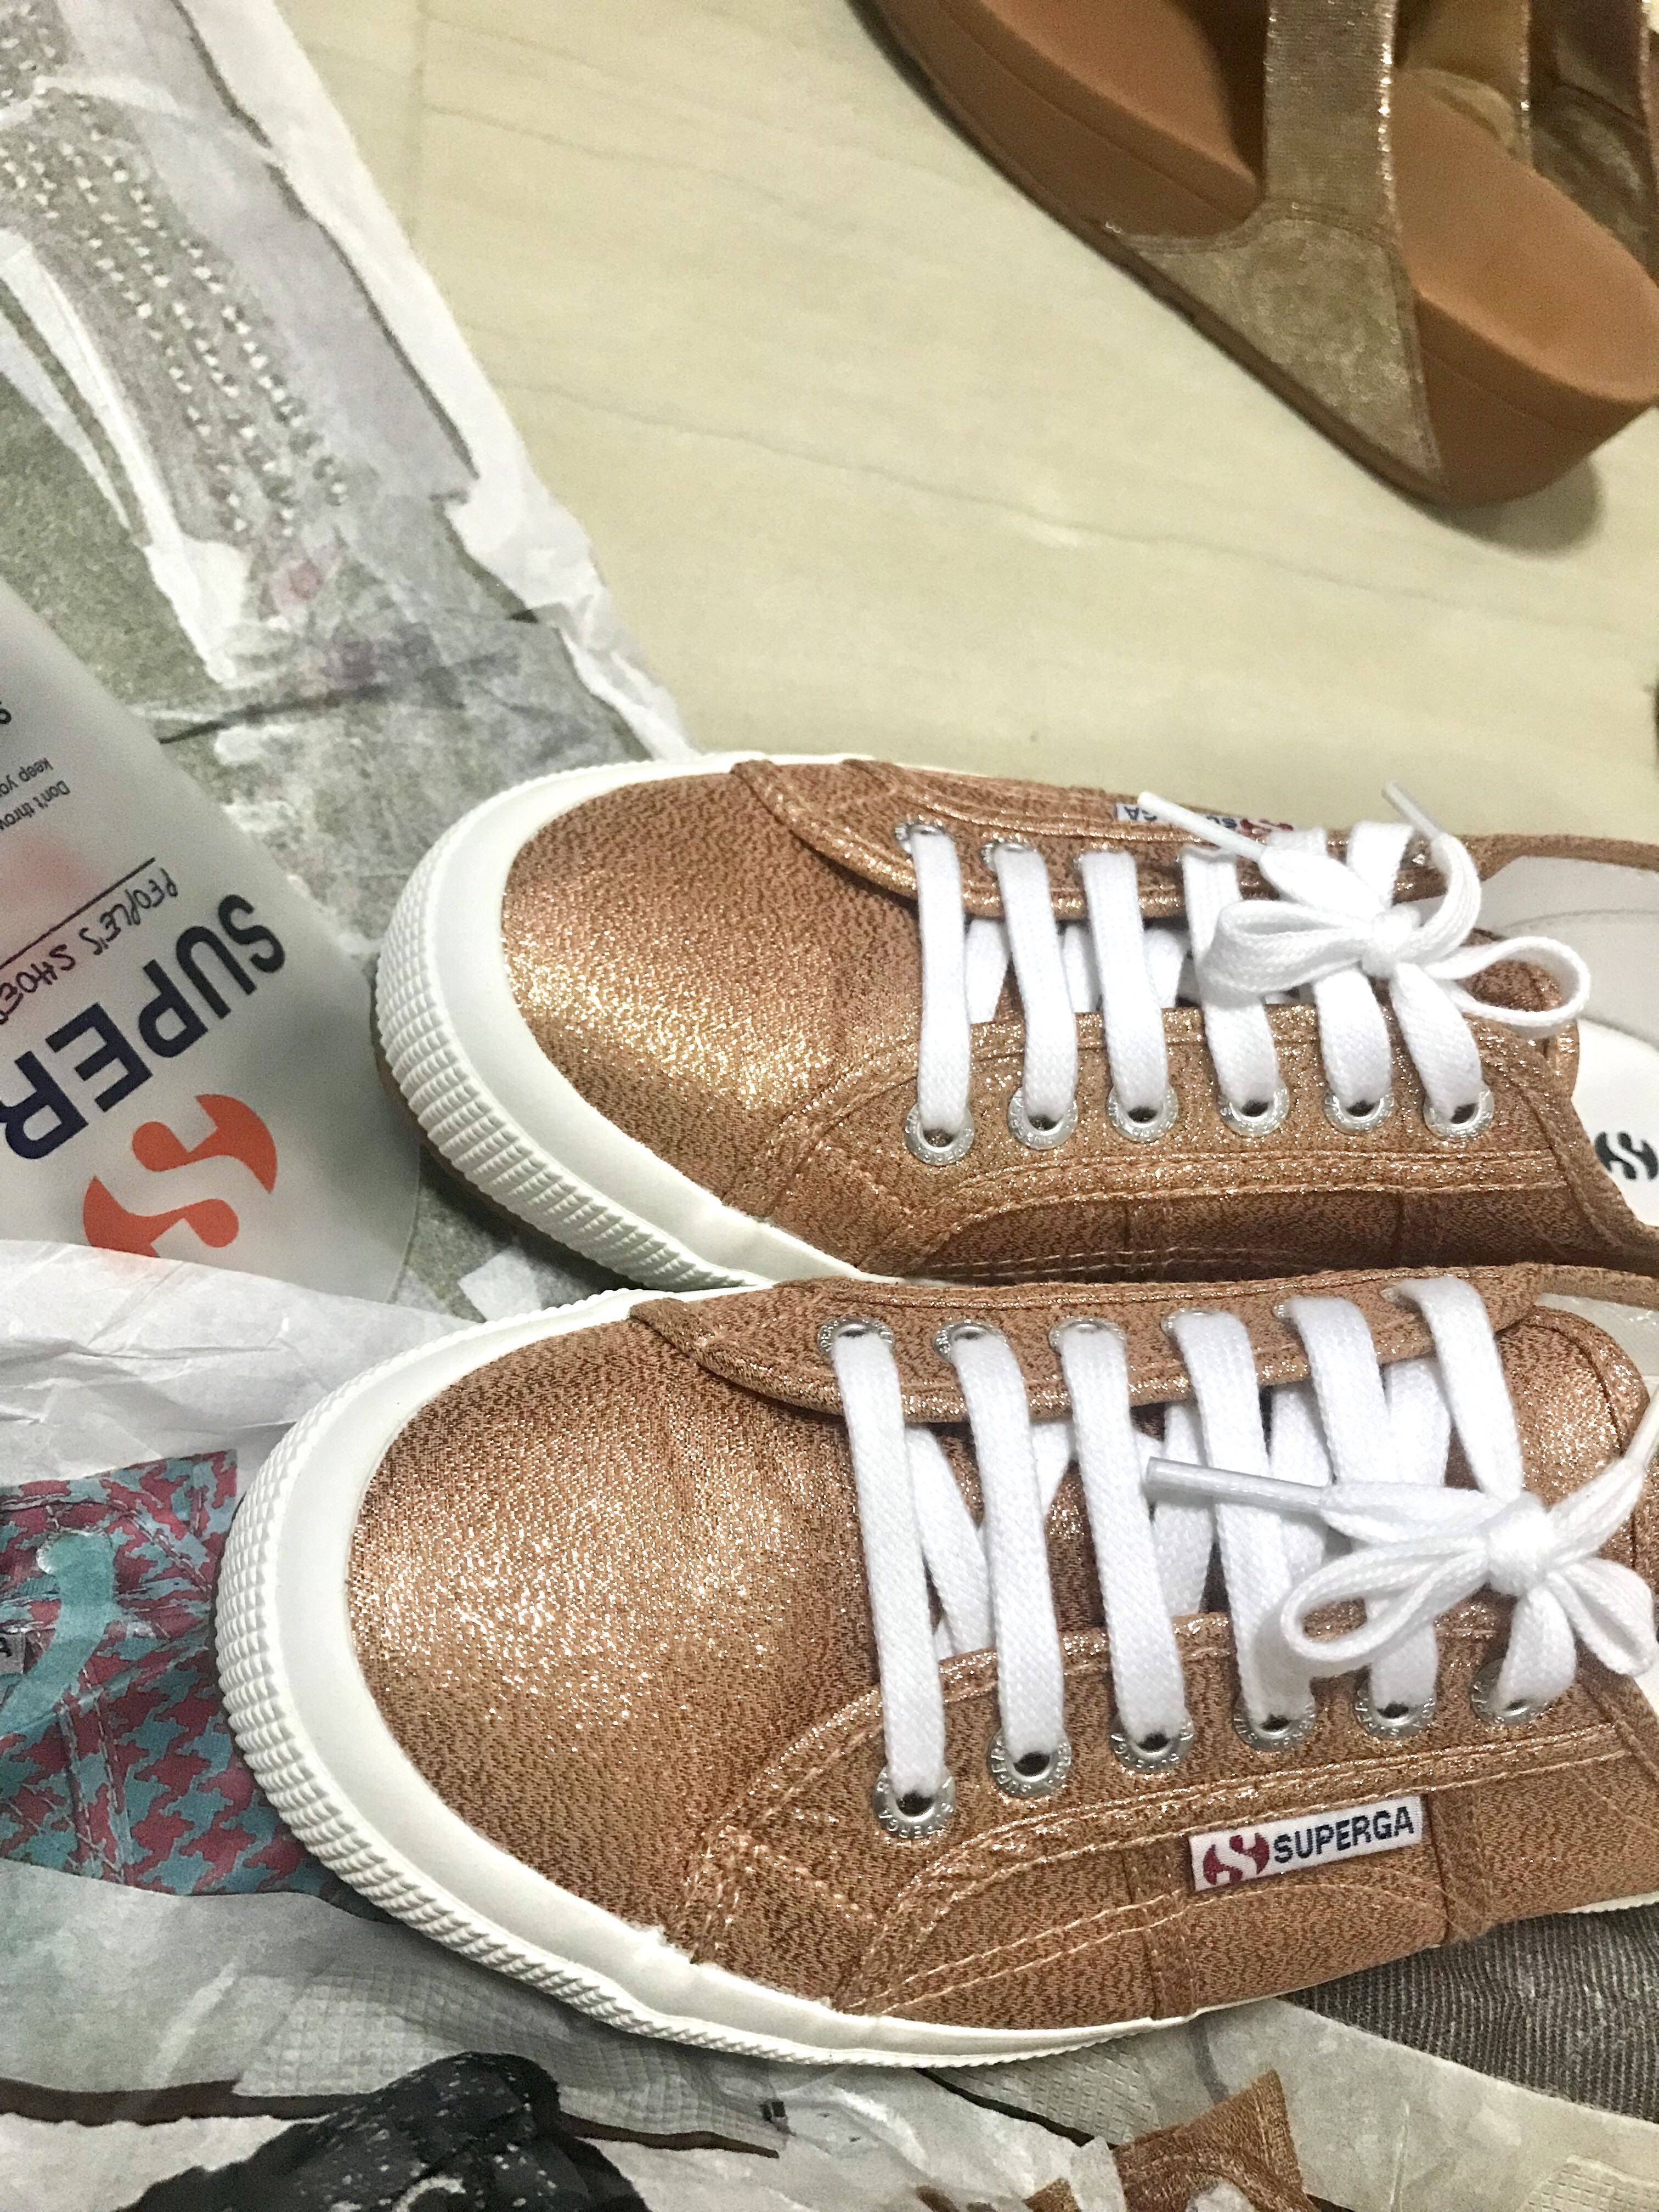 e0d57cf57a53f Original SUPERGA Lamew Rose Gold Size 40, Women's Fashion, Shoes, Sneakers  on Carousell